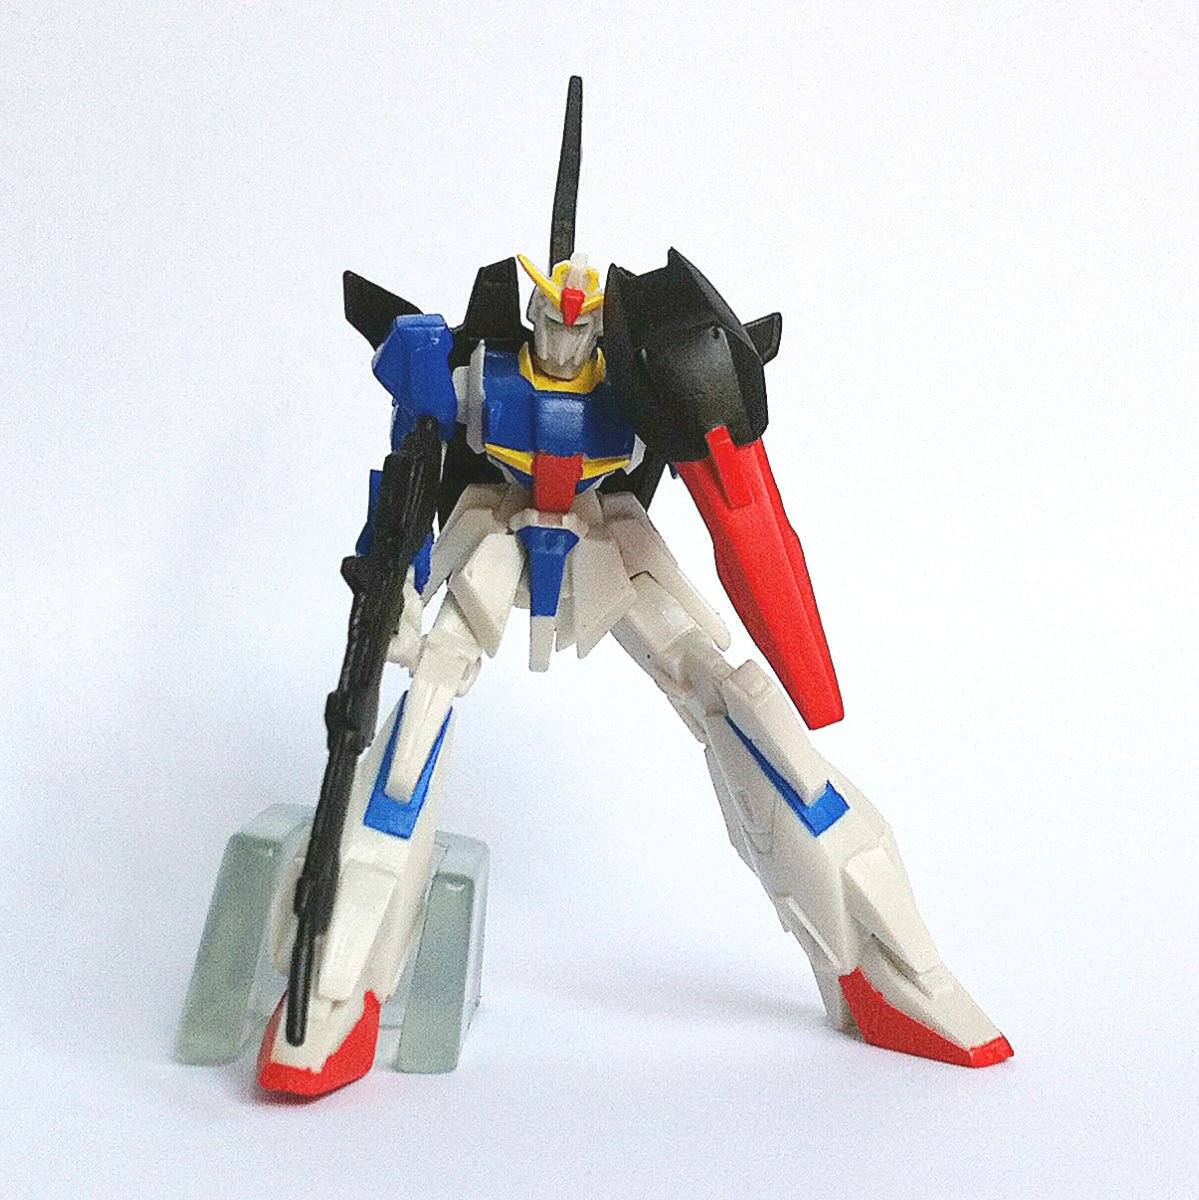 MSZ-006 Zeta Gundam from HG Gundam MS Selection by Bandai